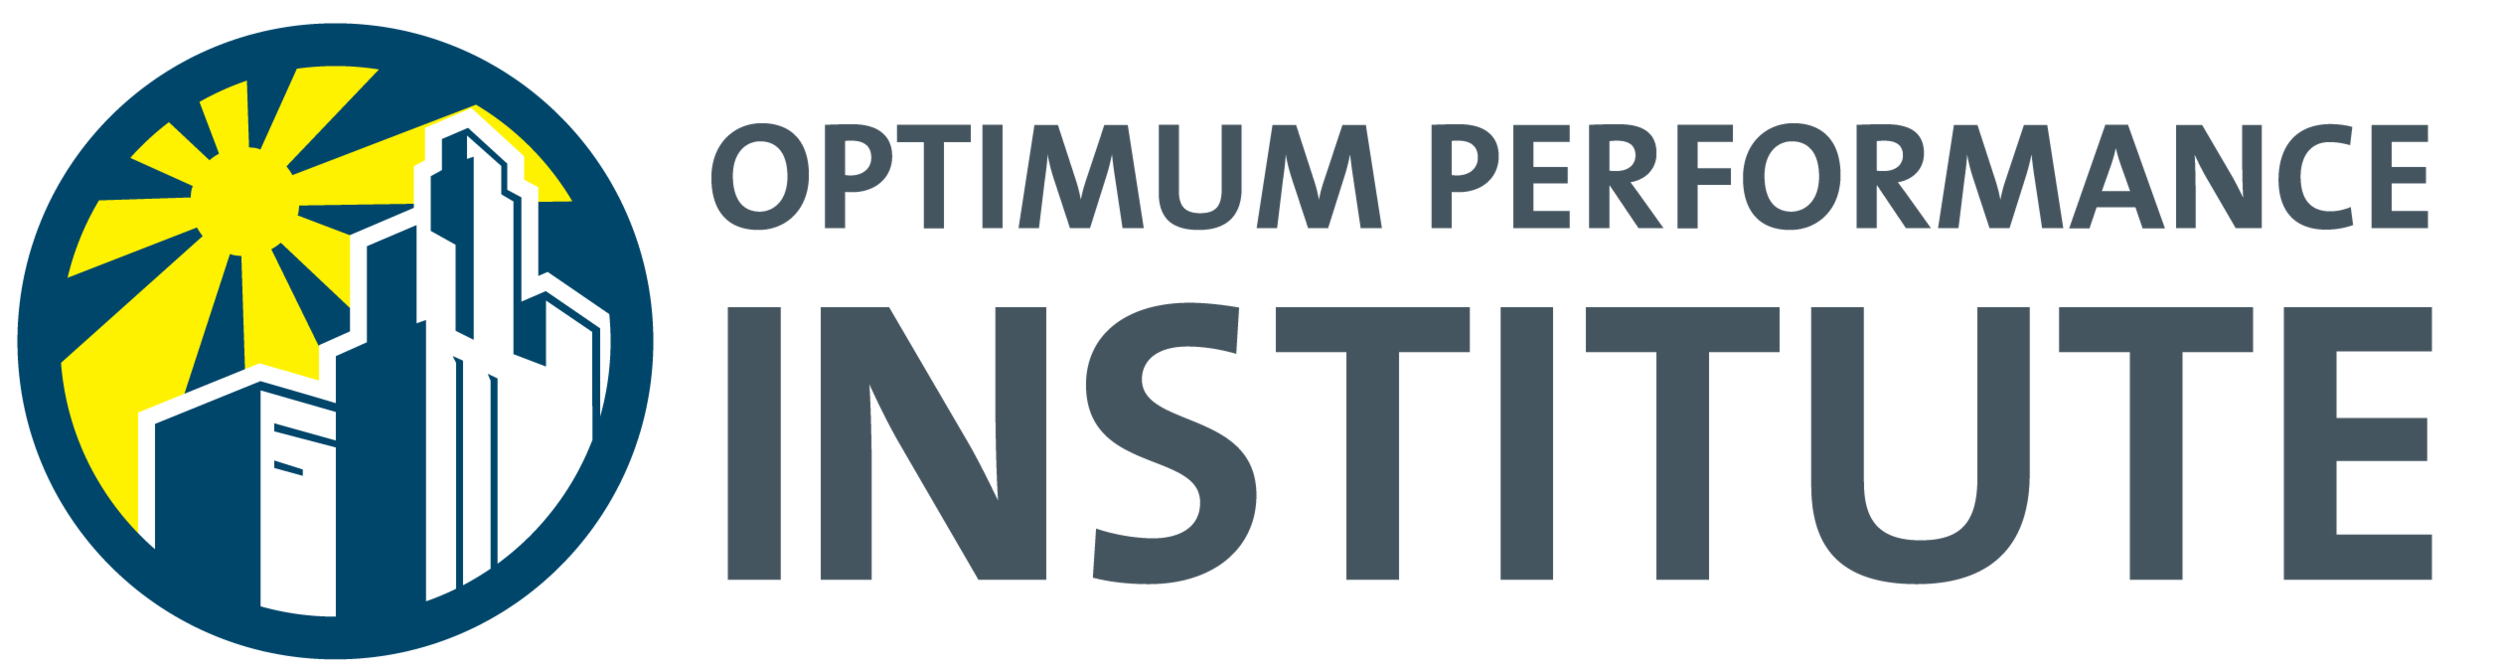 optimus performance institute